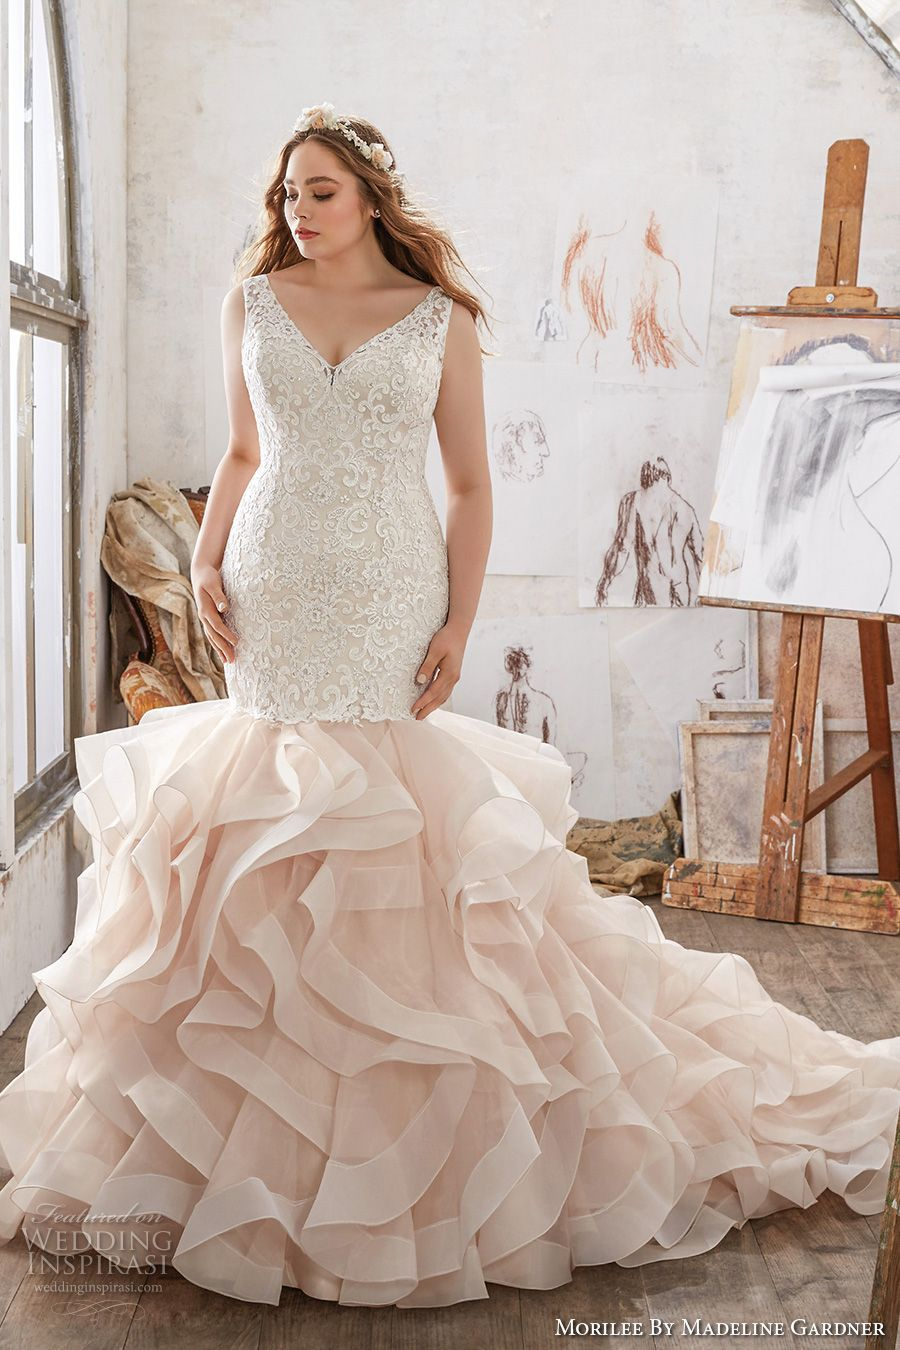 Mori lee madeline gardner wedding dress  Morilee by Madeline Gardner Spring  Wedding Dresses u ucJulietta